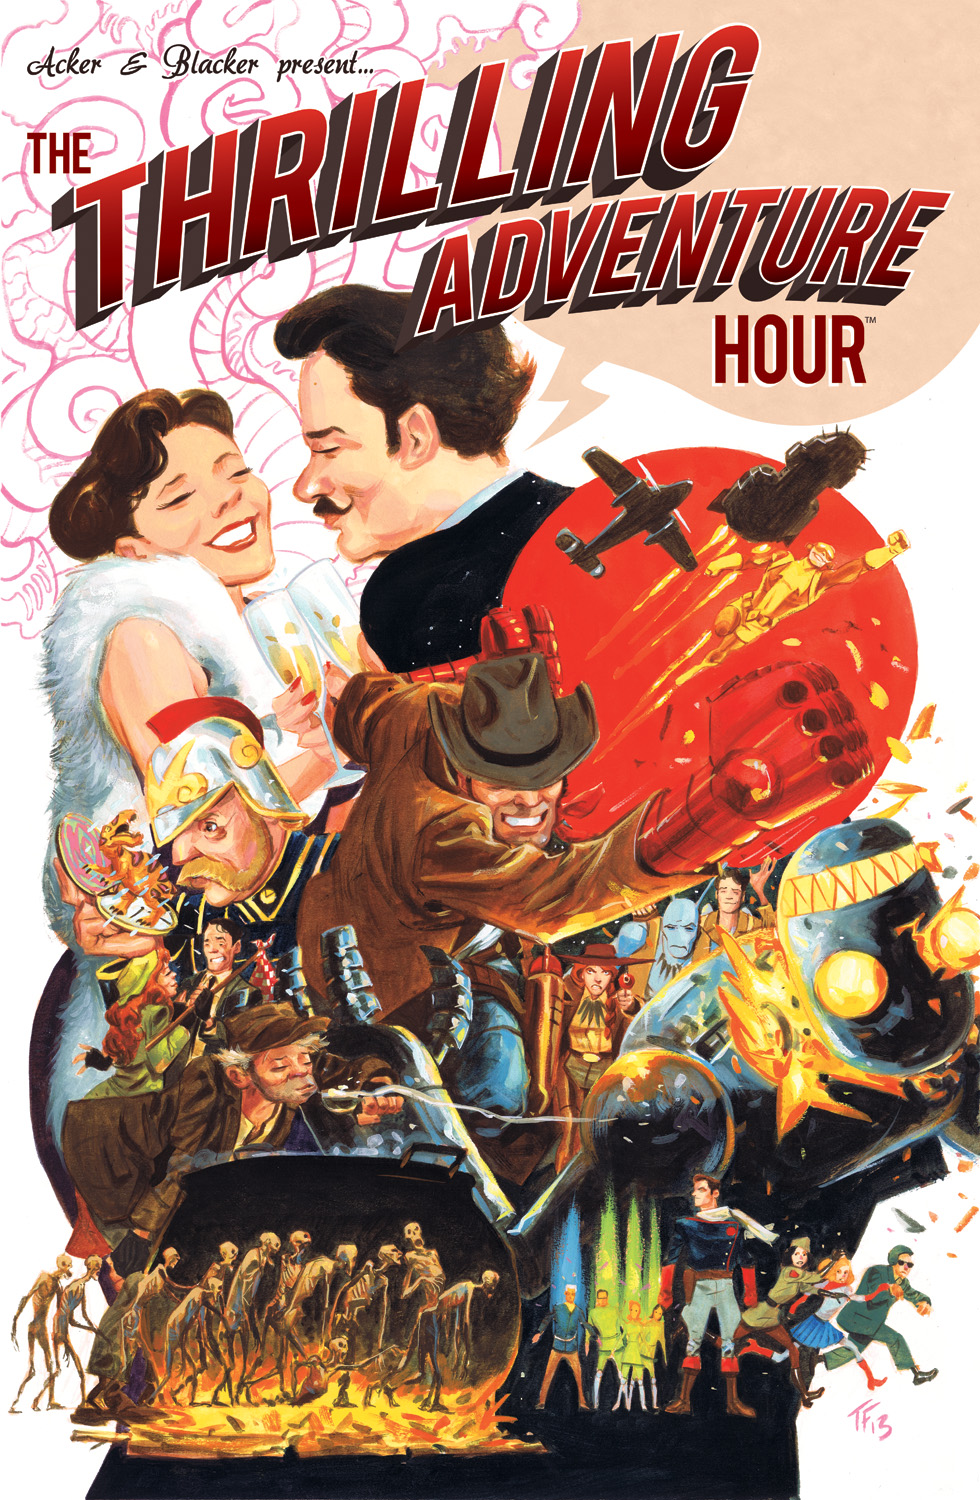 'The Thrilling Adventure Hour' Art Exhibit Opens at the Cartoon Art Museum in San Francisco